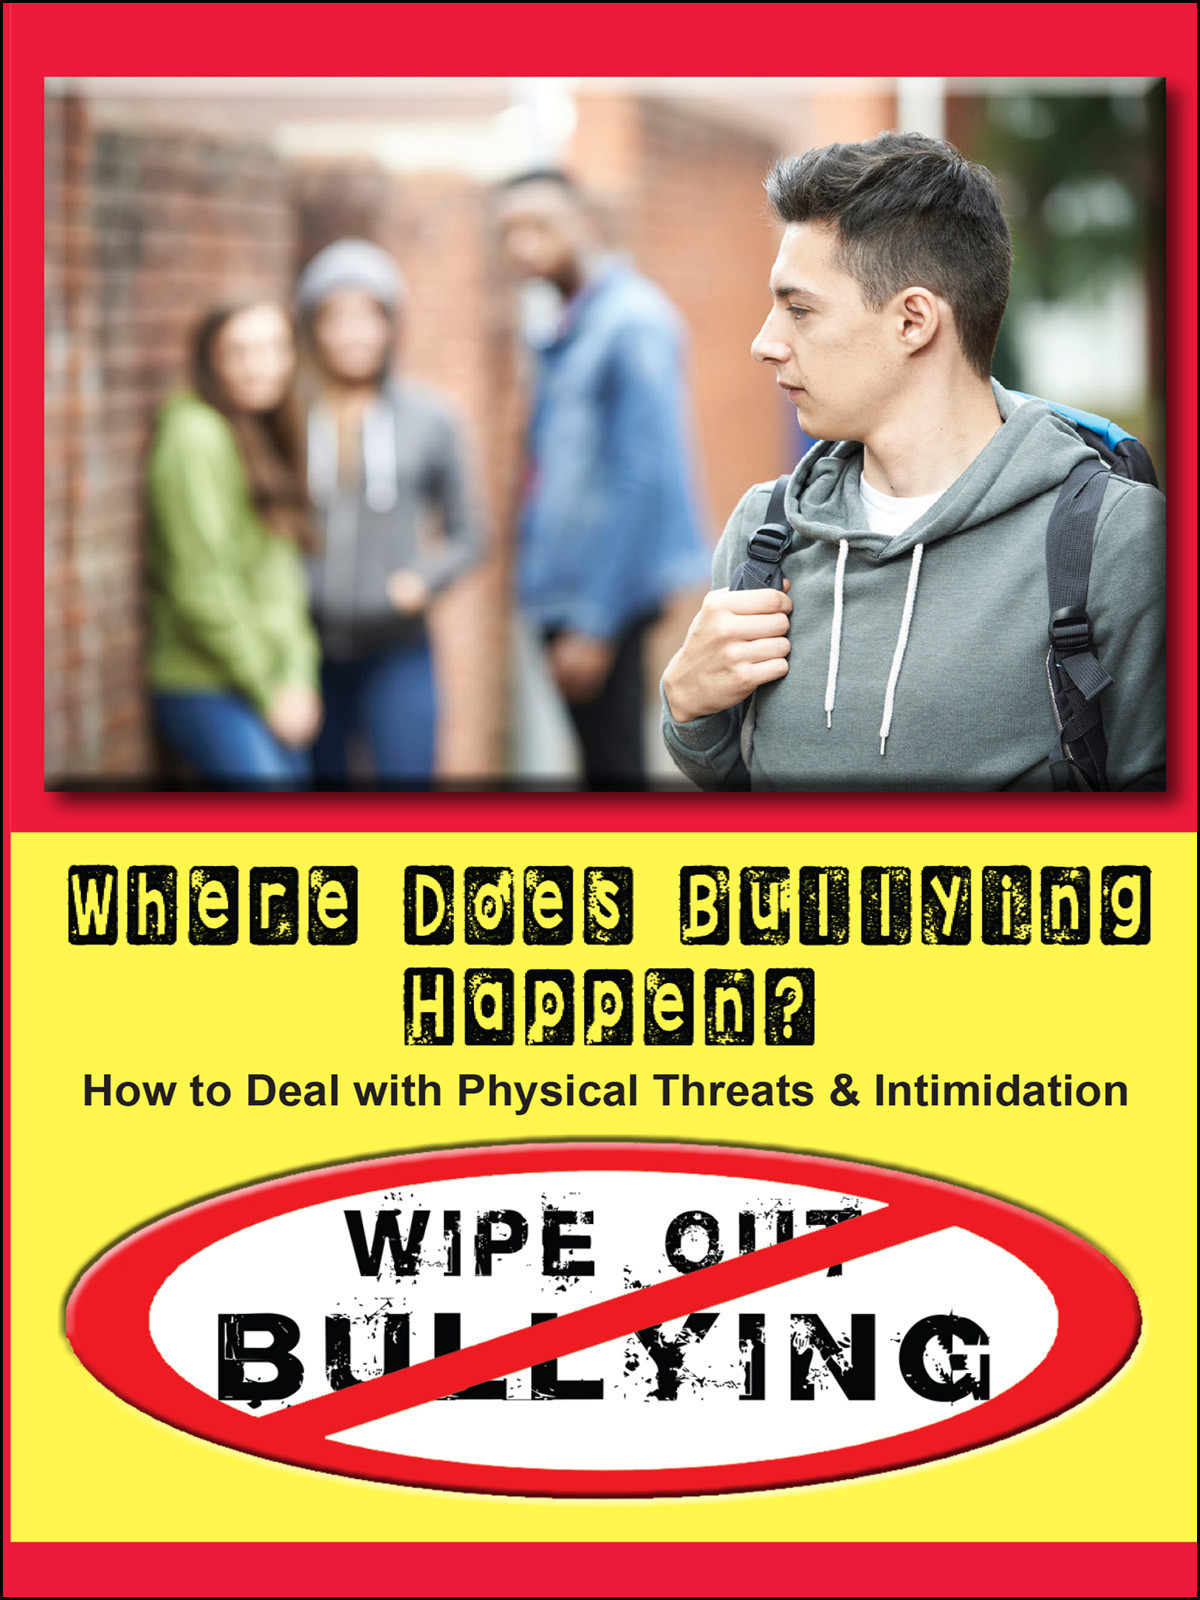 Q513 - Where Does Bullying Happen How to Deal with Physical Threats & Intimidation